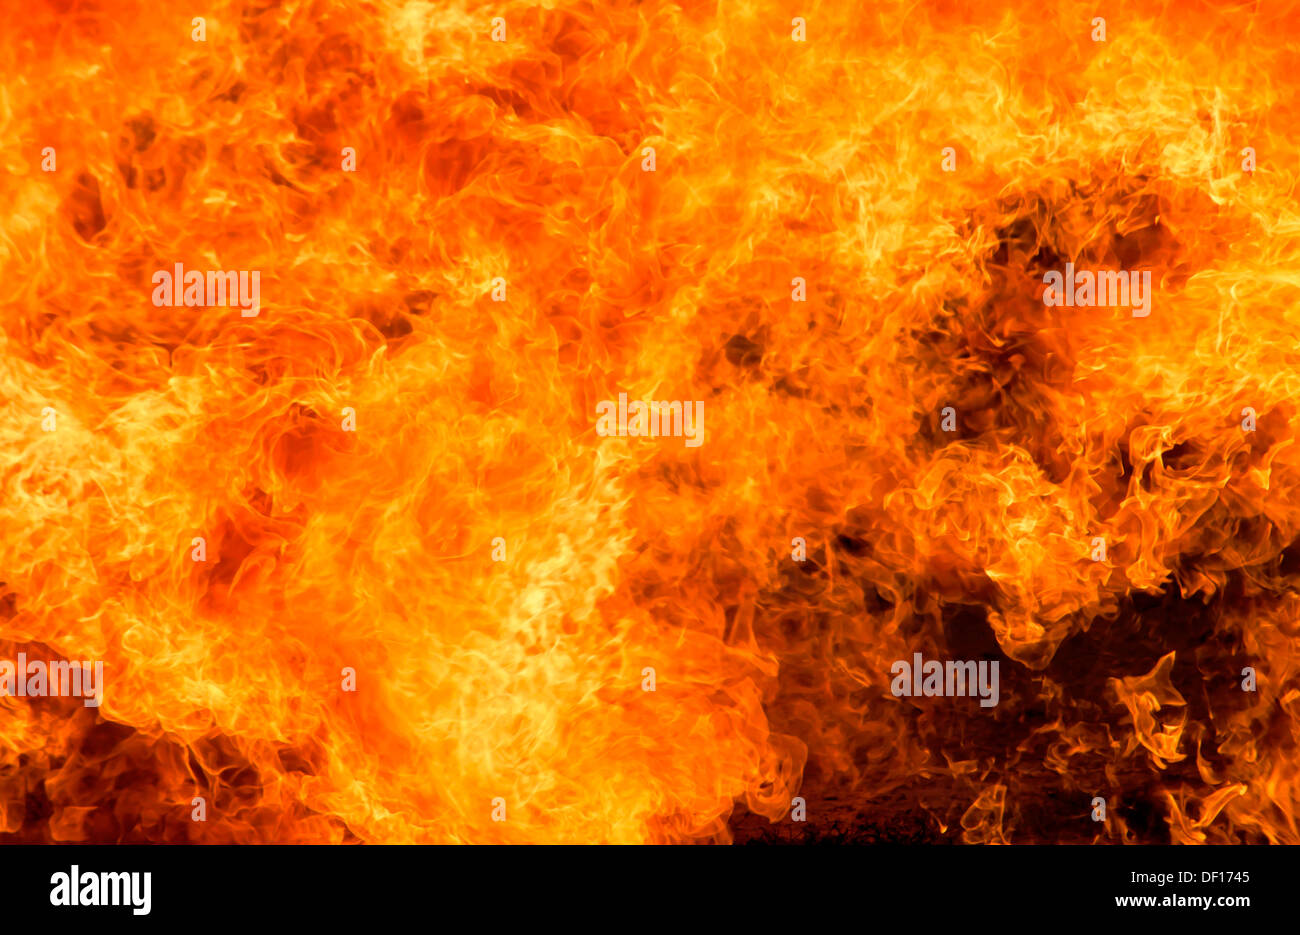 hight resolution of background burning flame red yellow heat energy